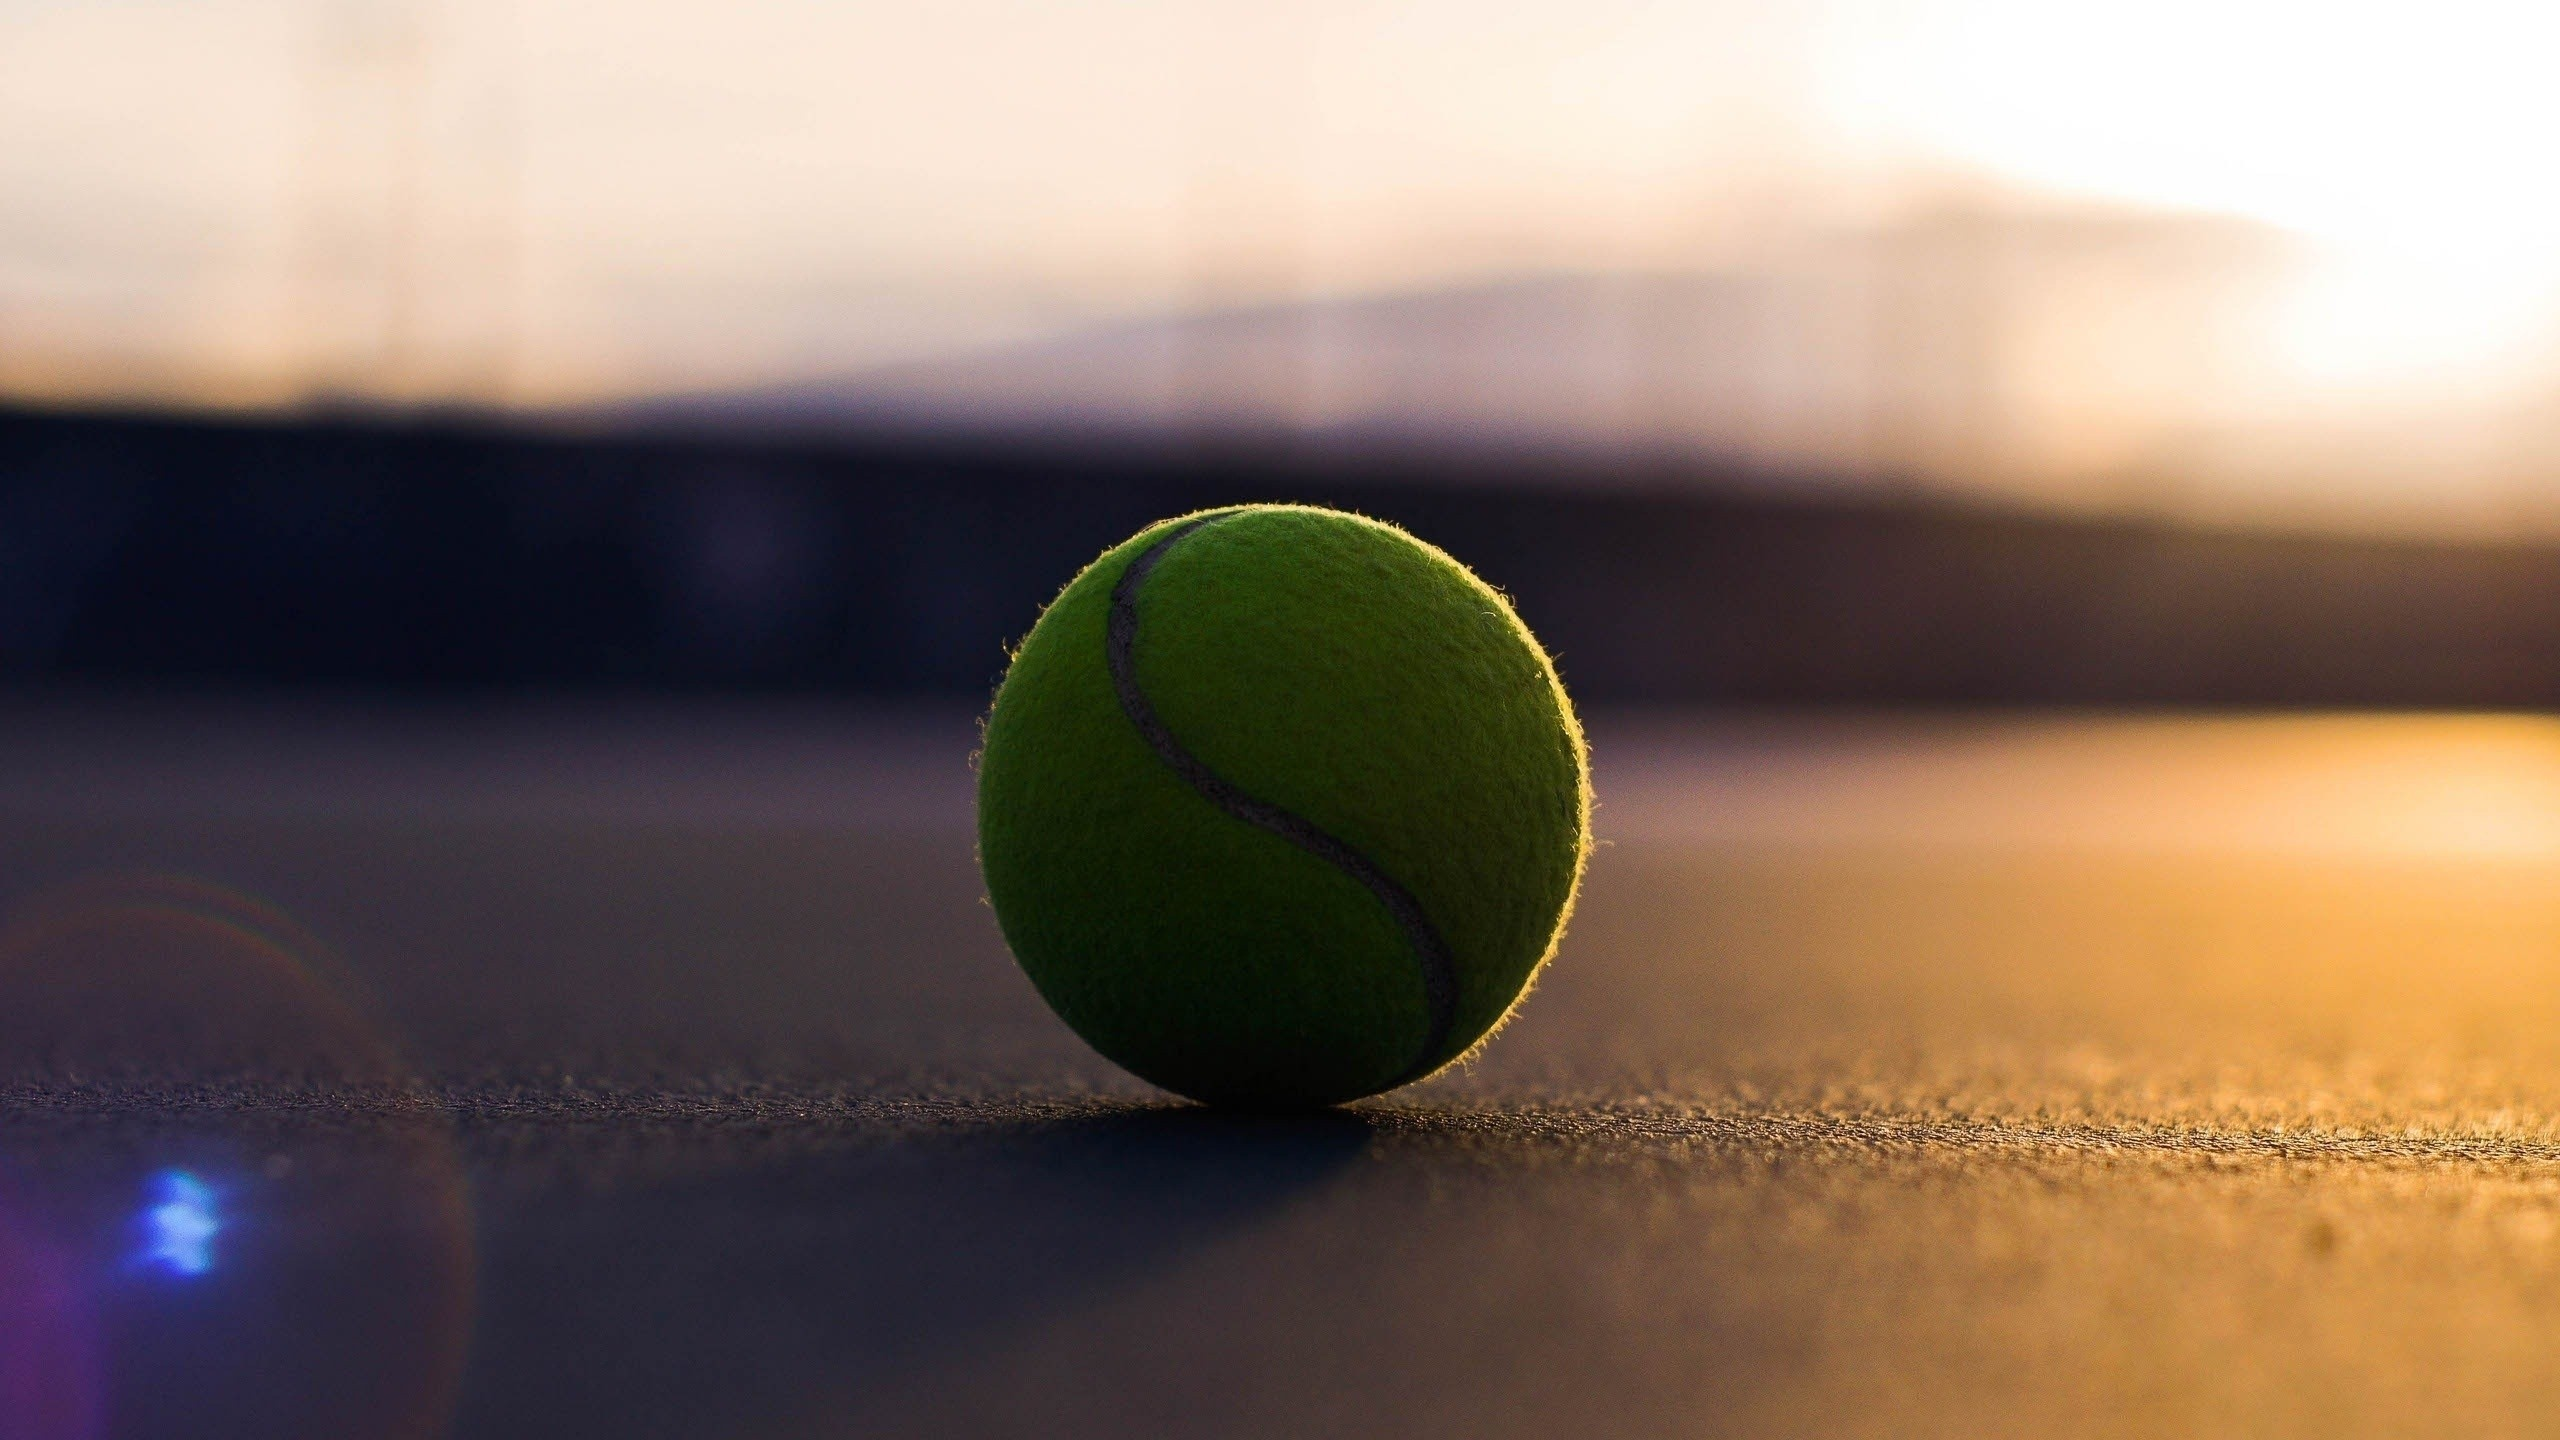 Sport Collection Hd Wallpapers 2048x2048 Sport Wallpapers: Tennis Wallpapers HD (57+ Images